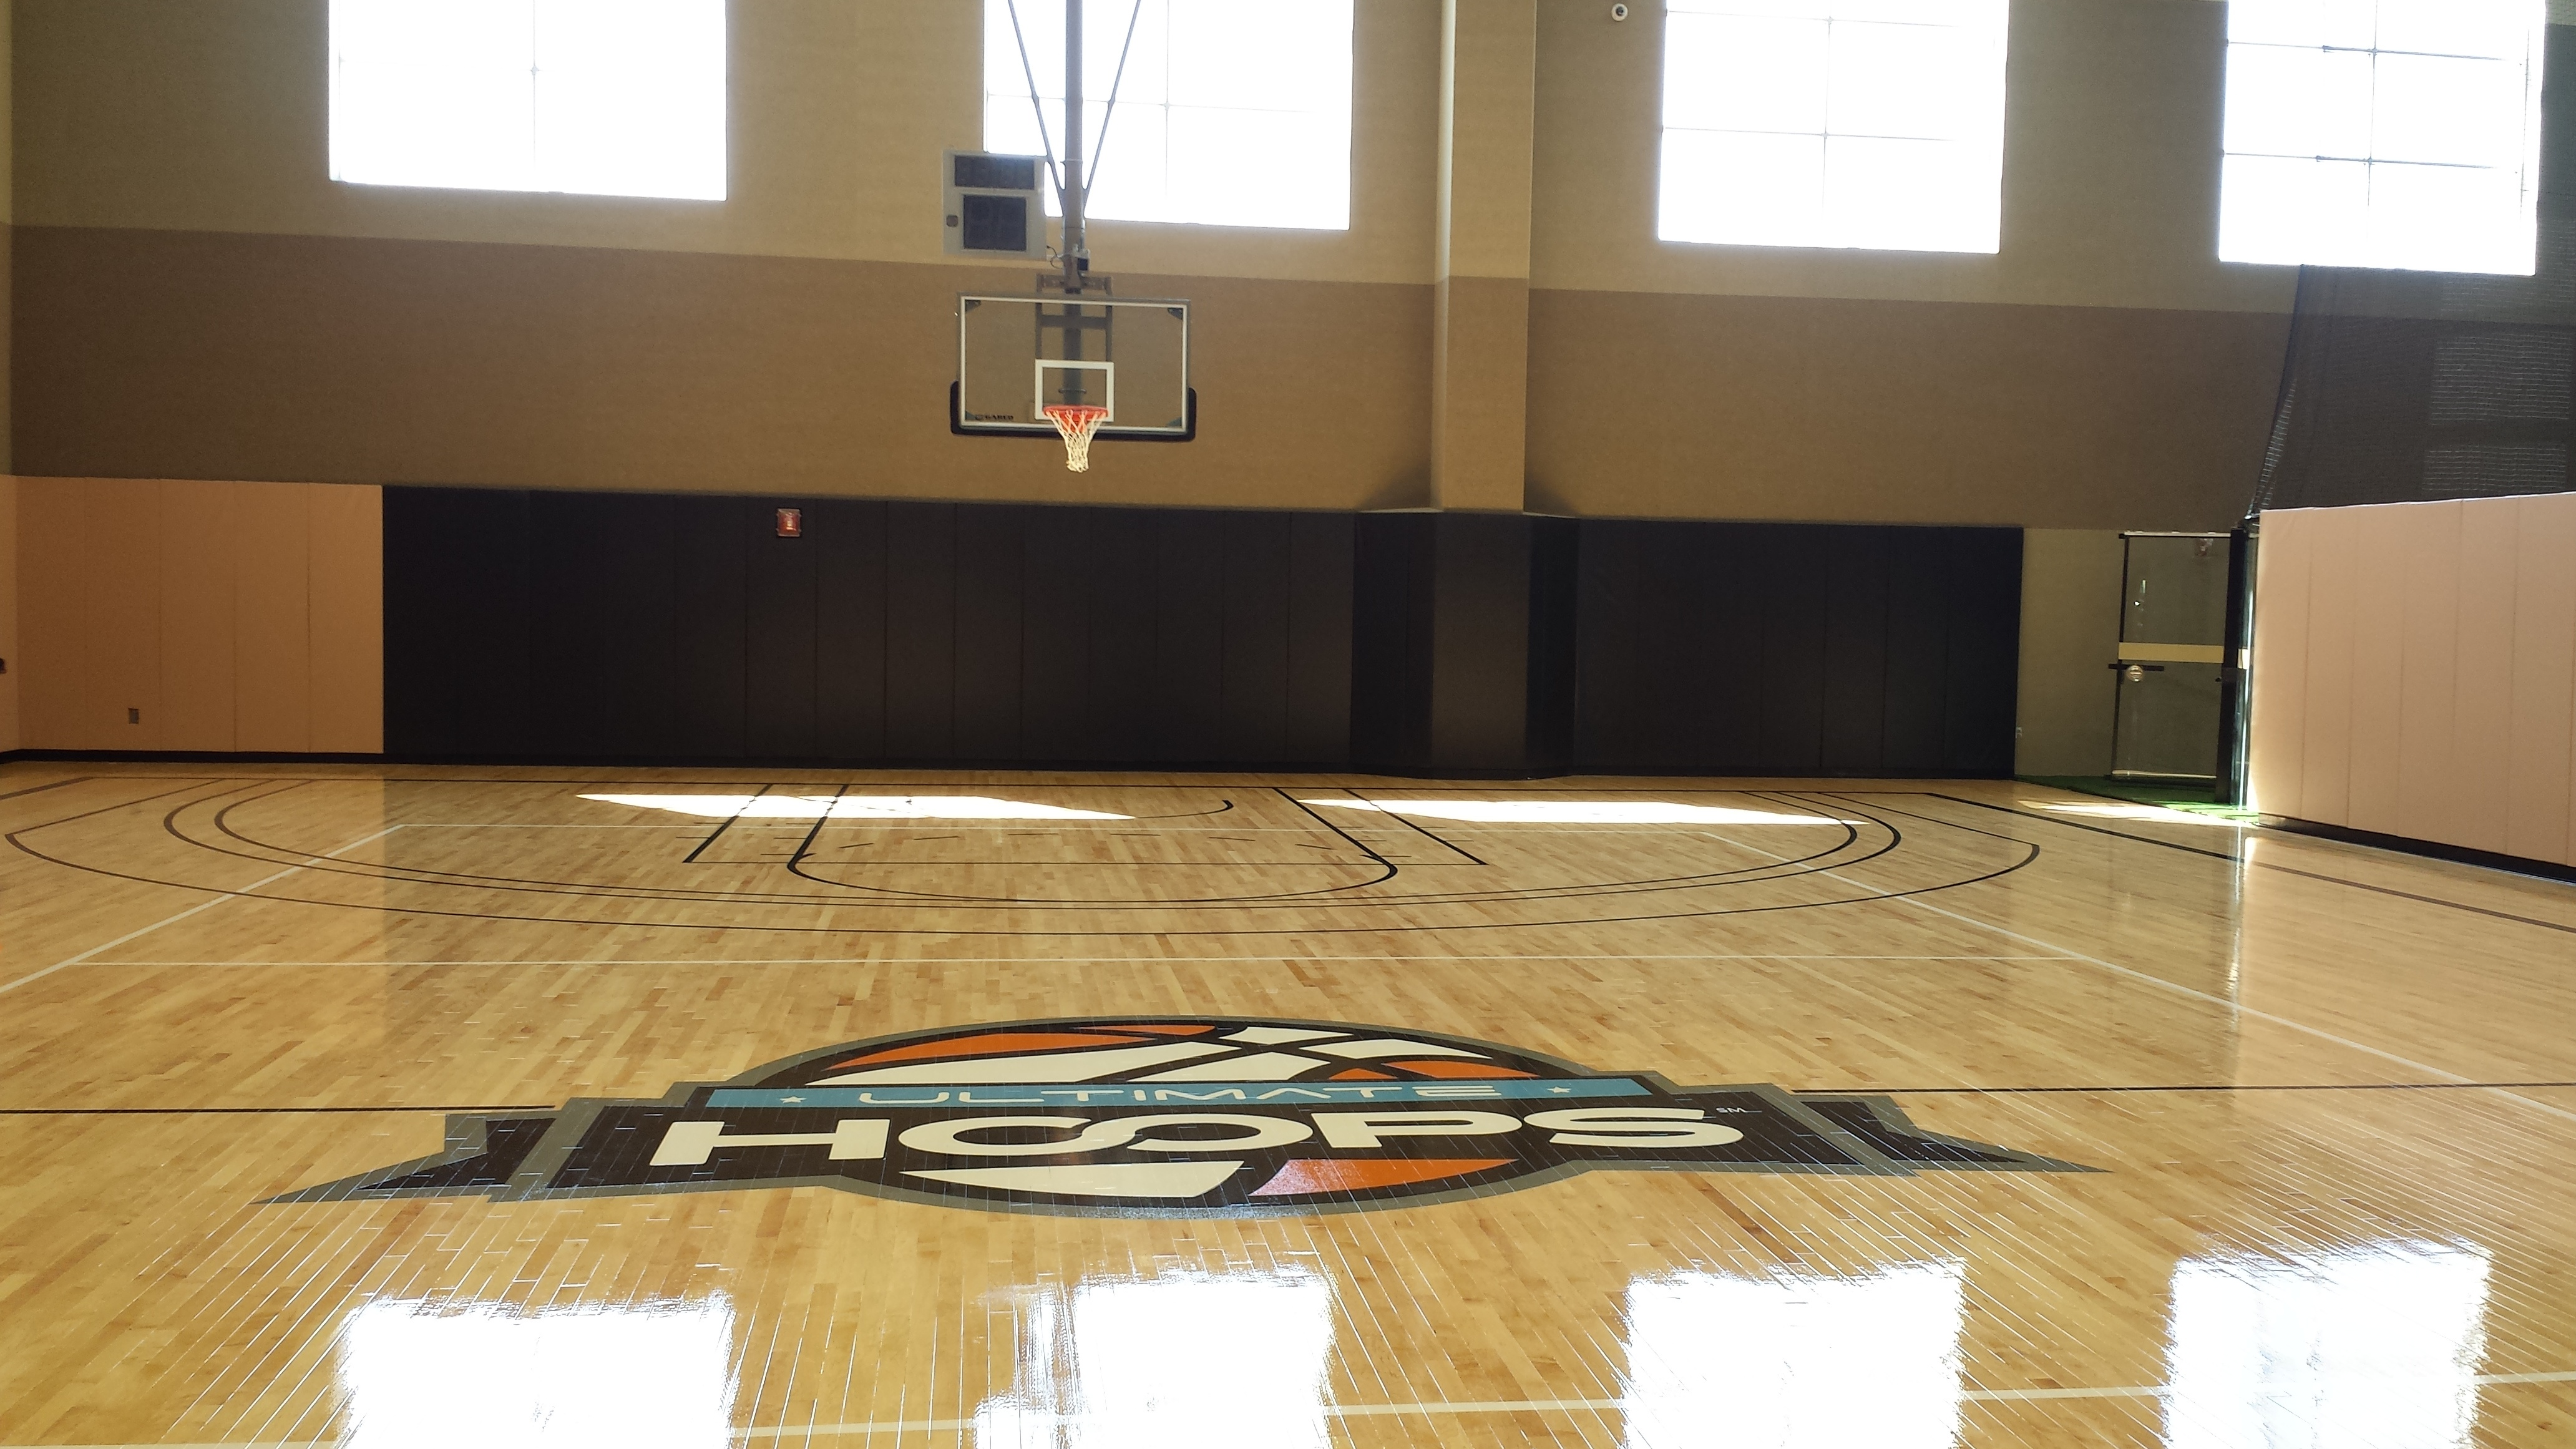 basketball-goal-in-gym-life-time-athletic-mississauga.jpg